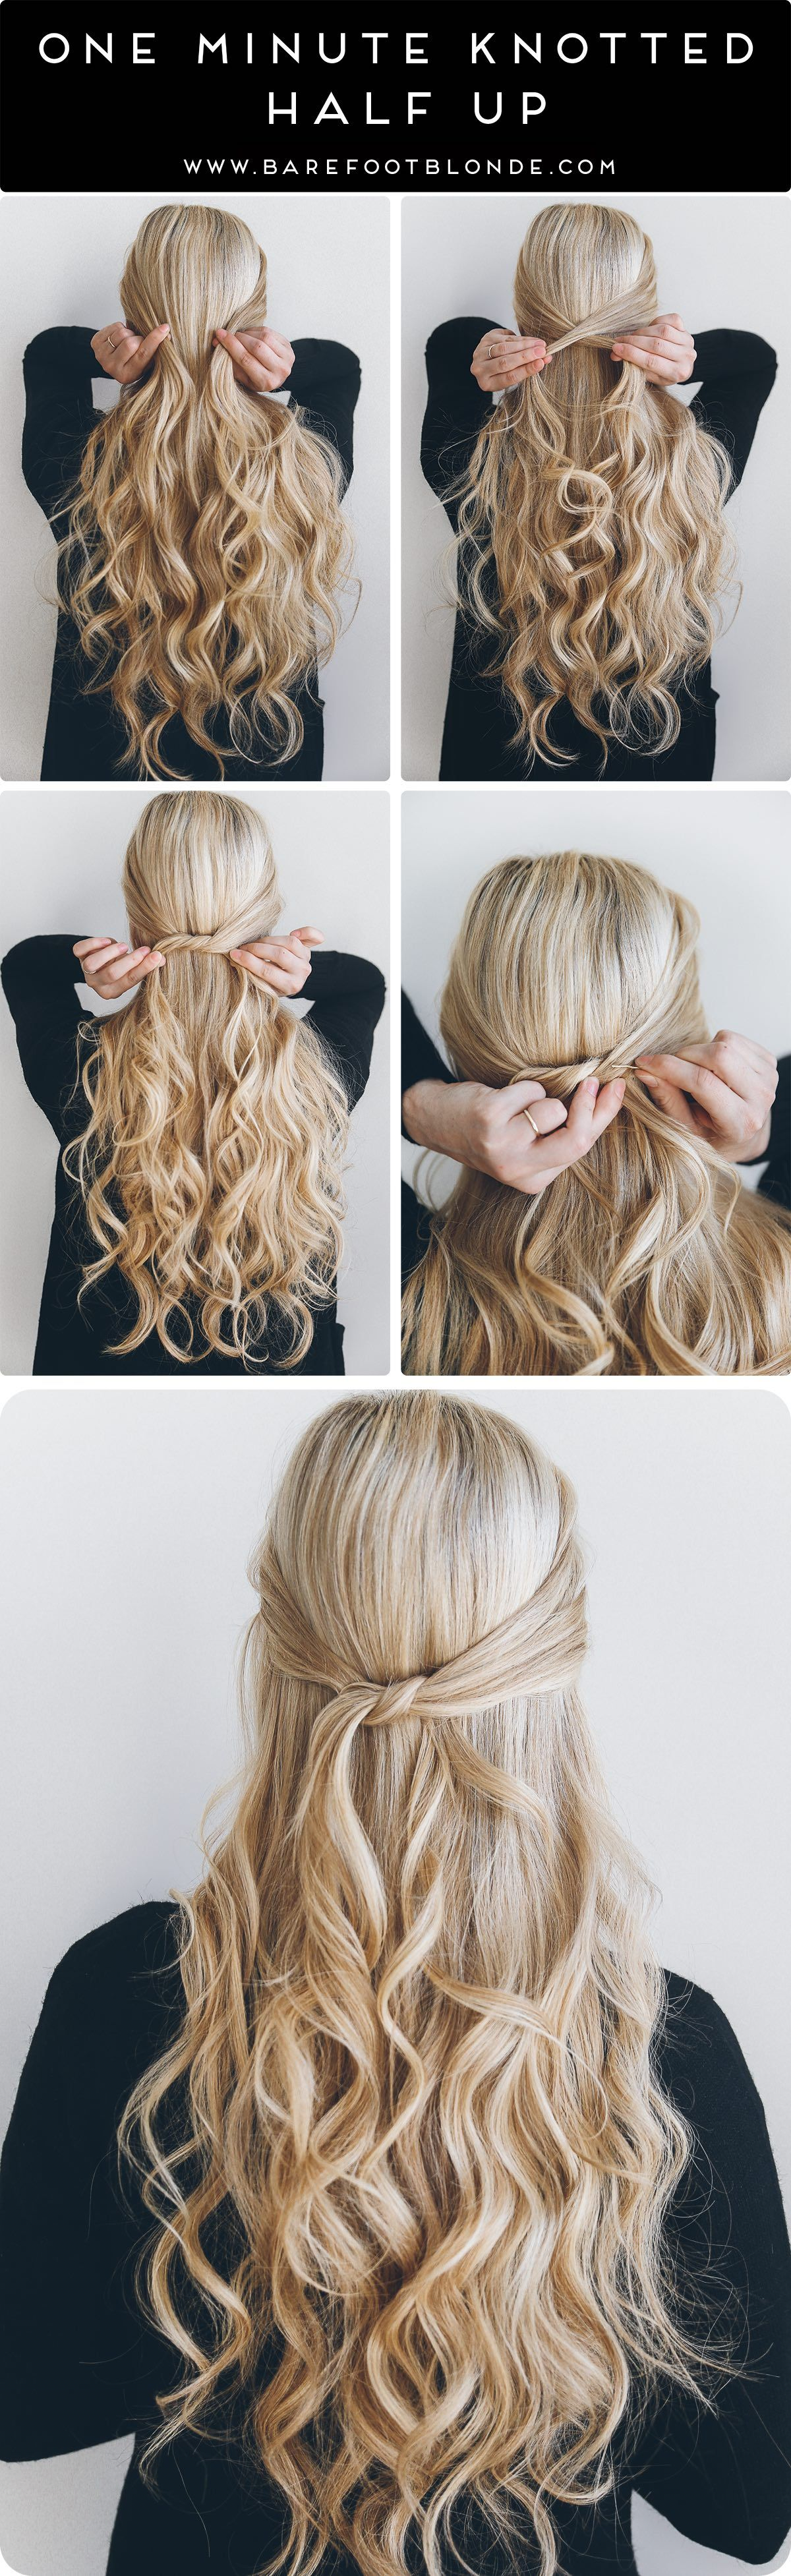 Hairstyle ideas quick easy hair half up knotted hairstyles blonde